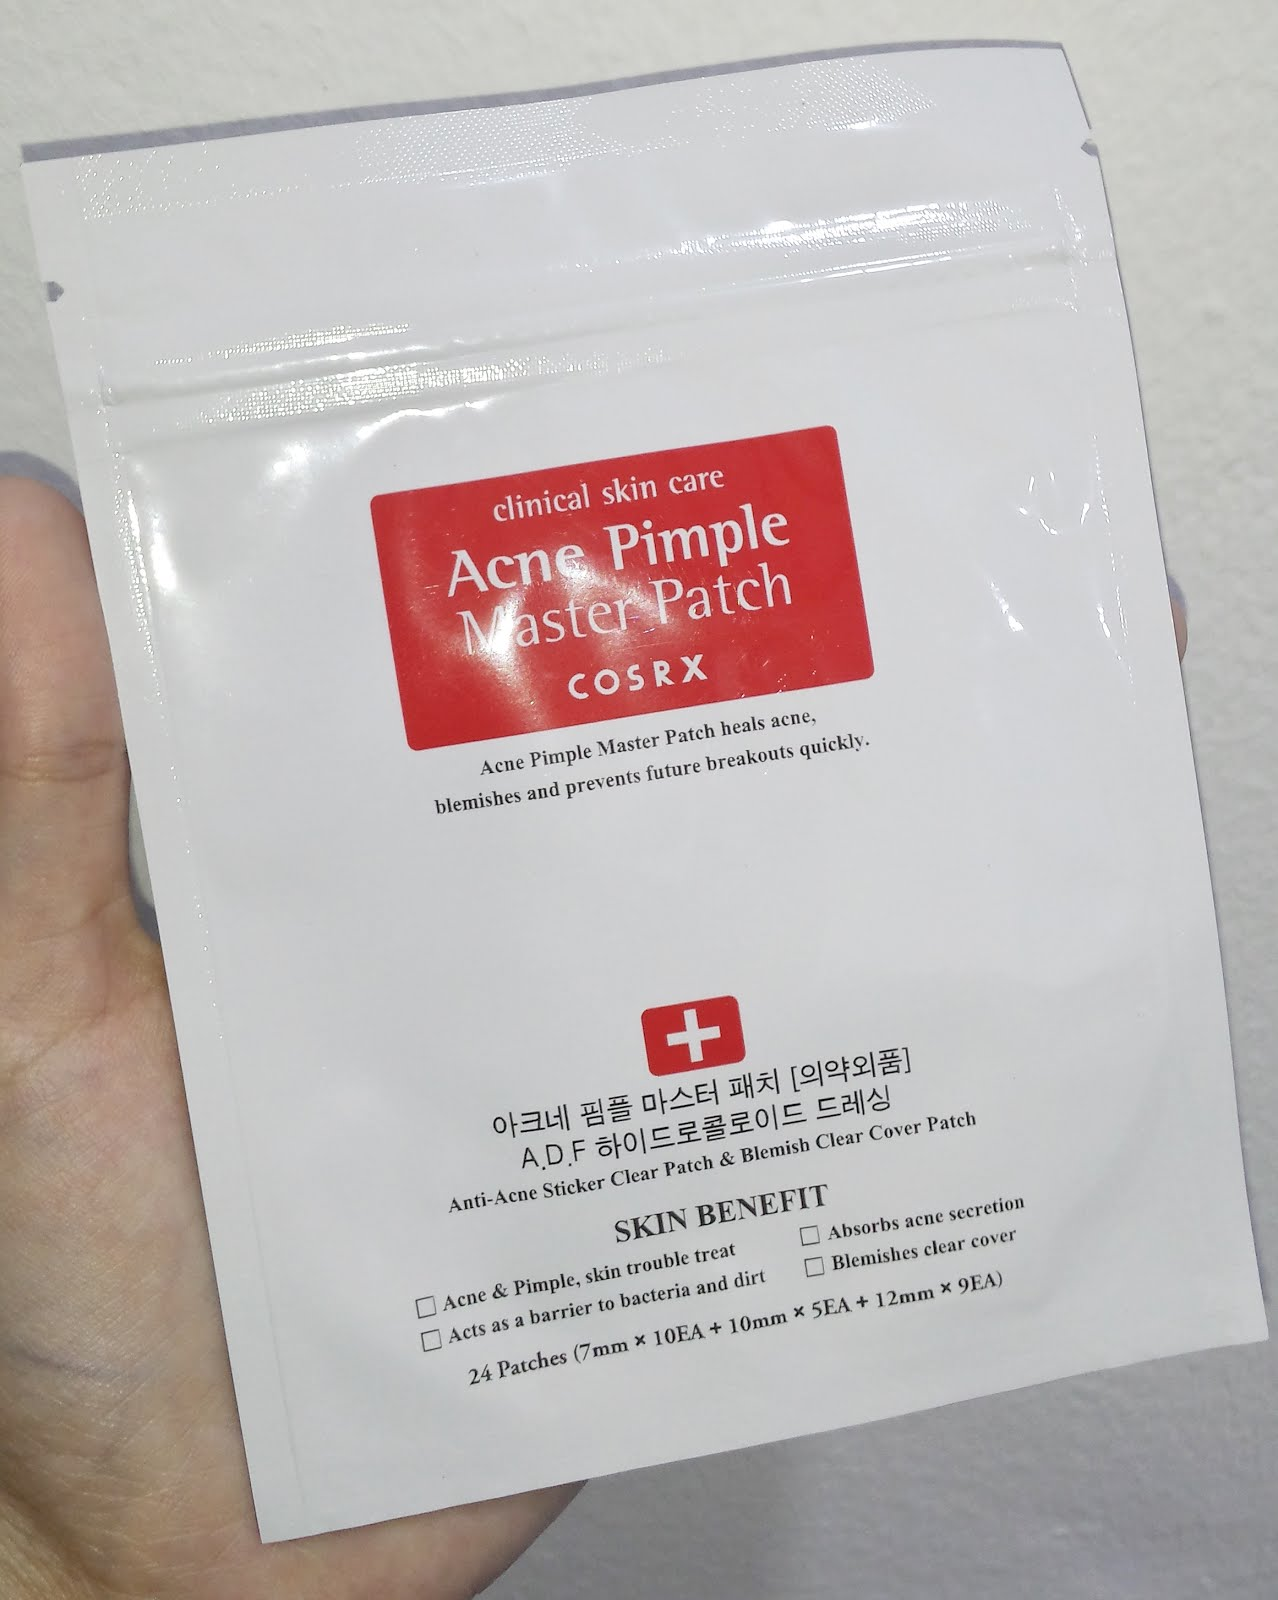 Acne Pimple Master Patch by cosrx #10